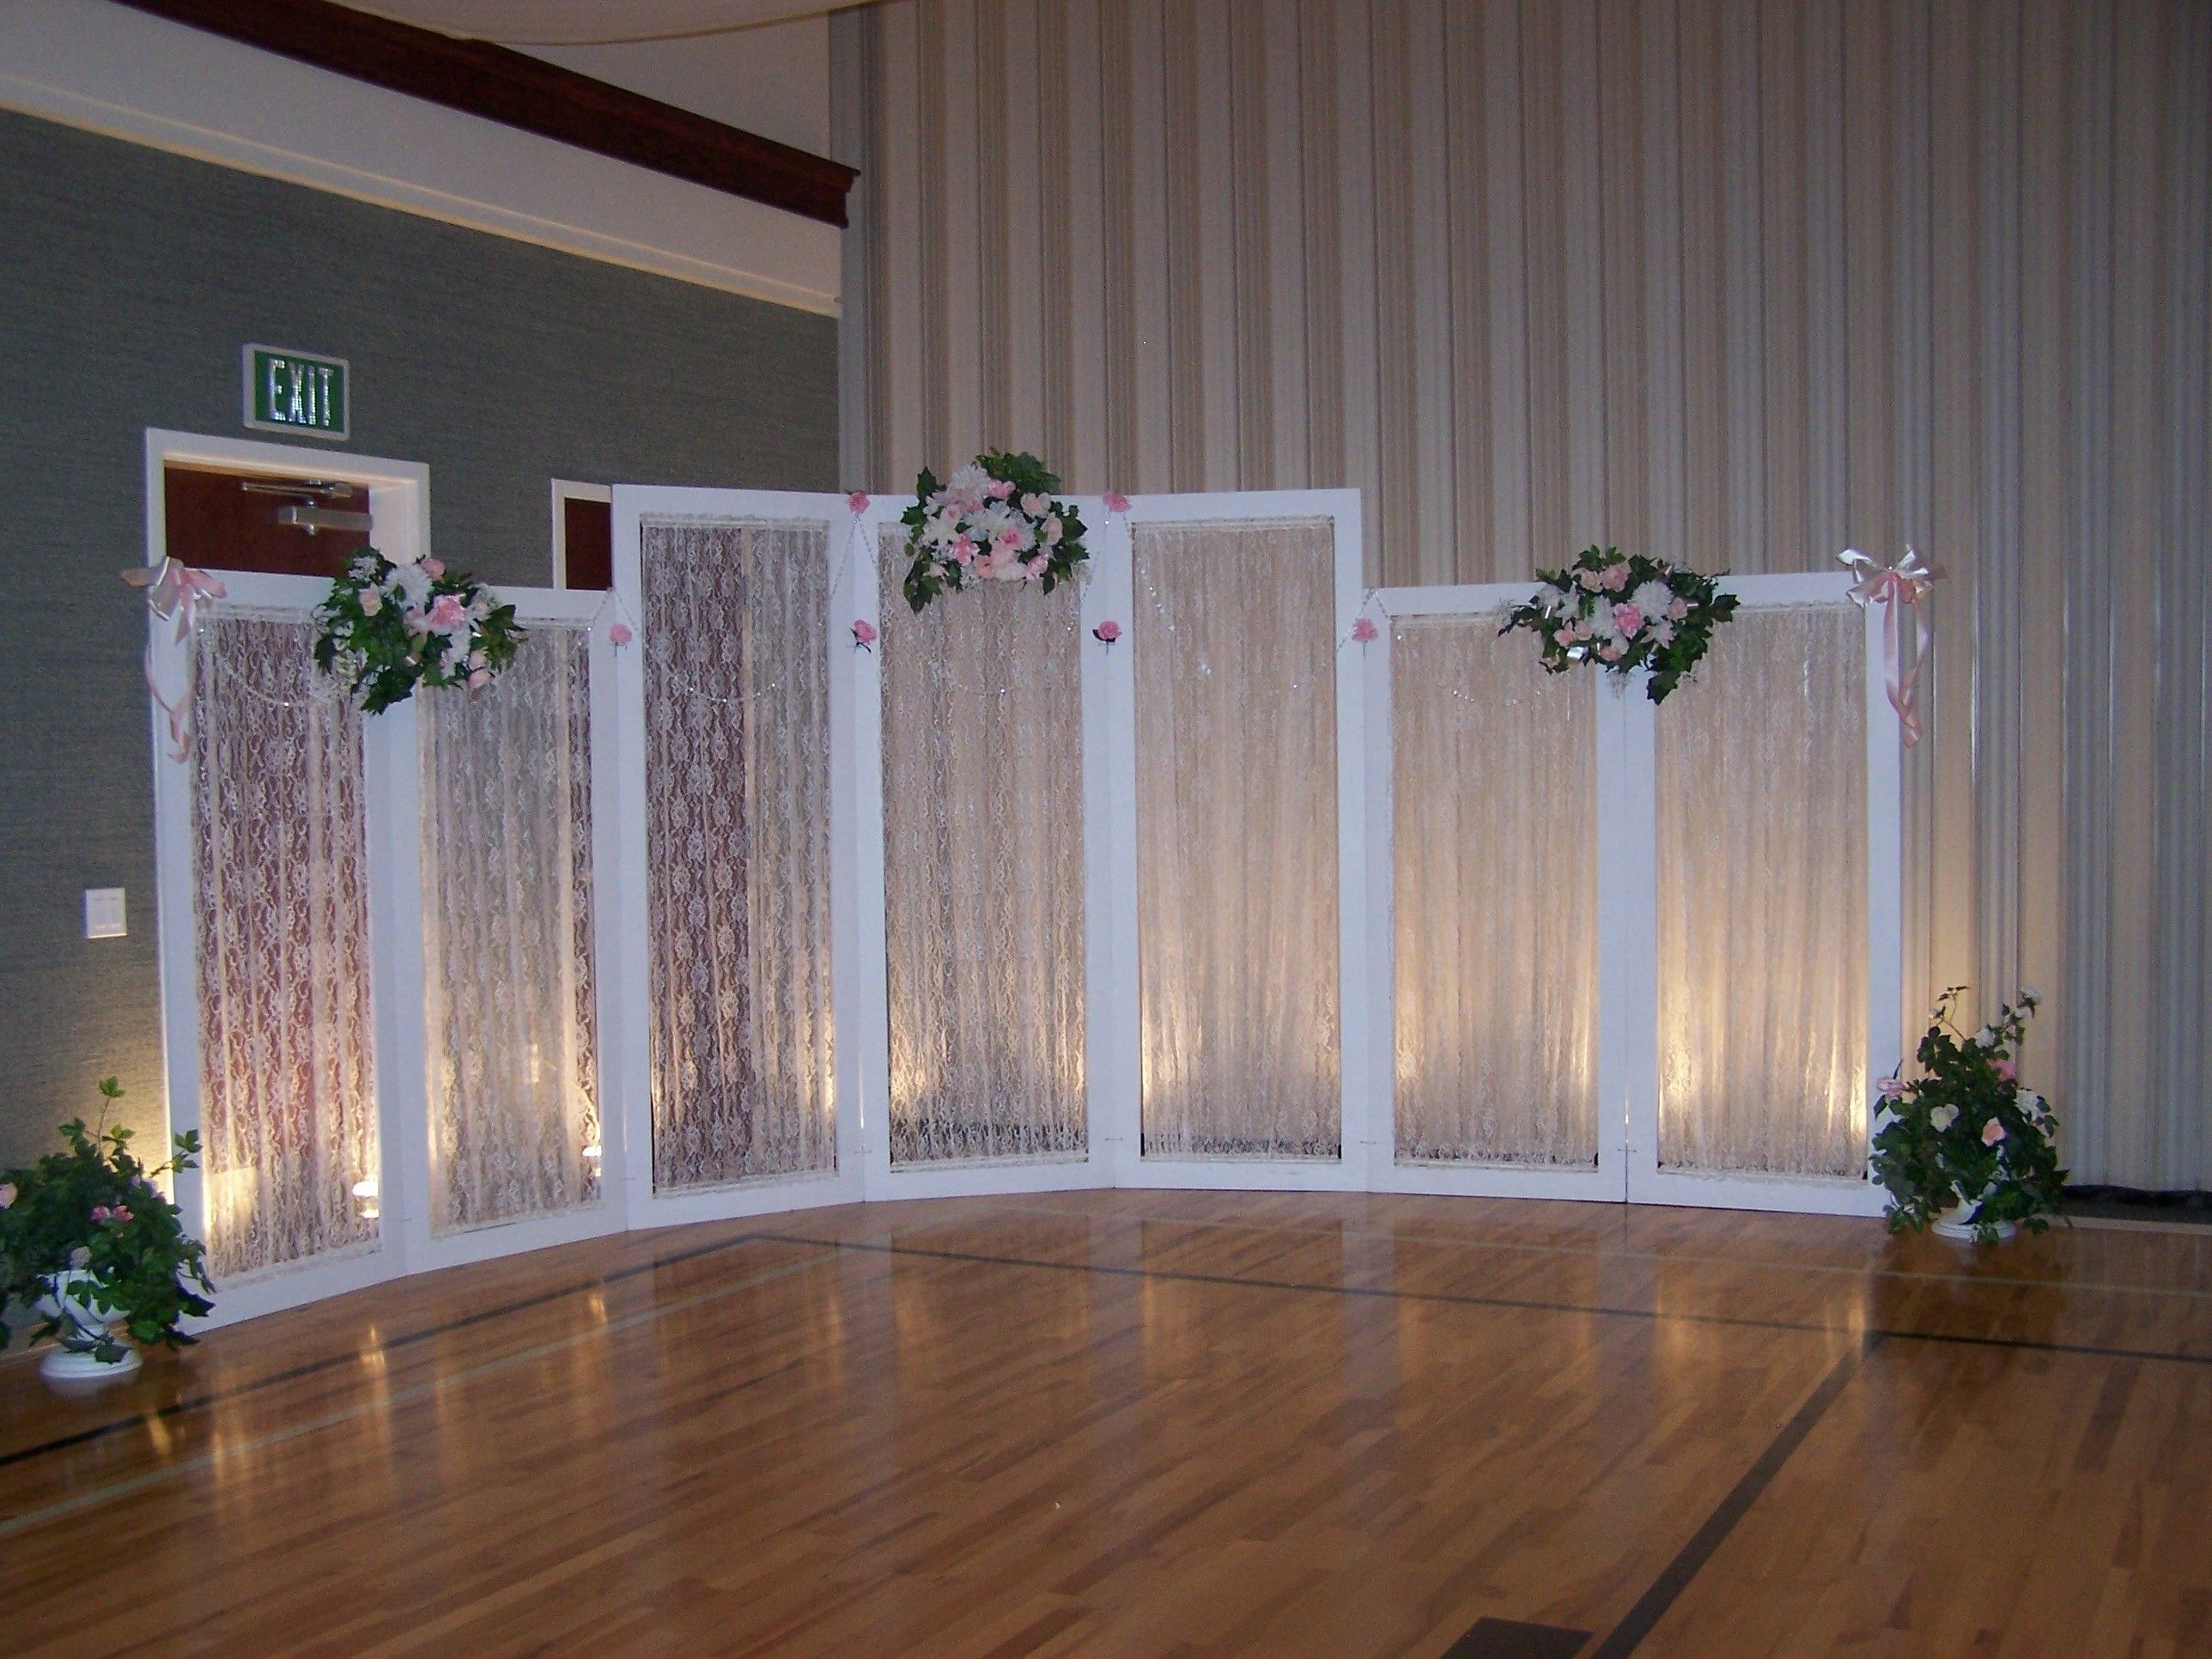 Cheap wedding receptions salt lake city ut ksl local pinteres transform any room from average into amazing by adding ceiling decor ceiling decor can be added for a junglespirit Images